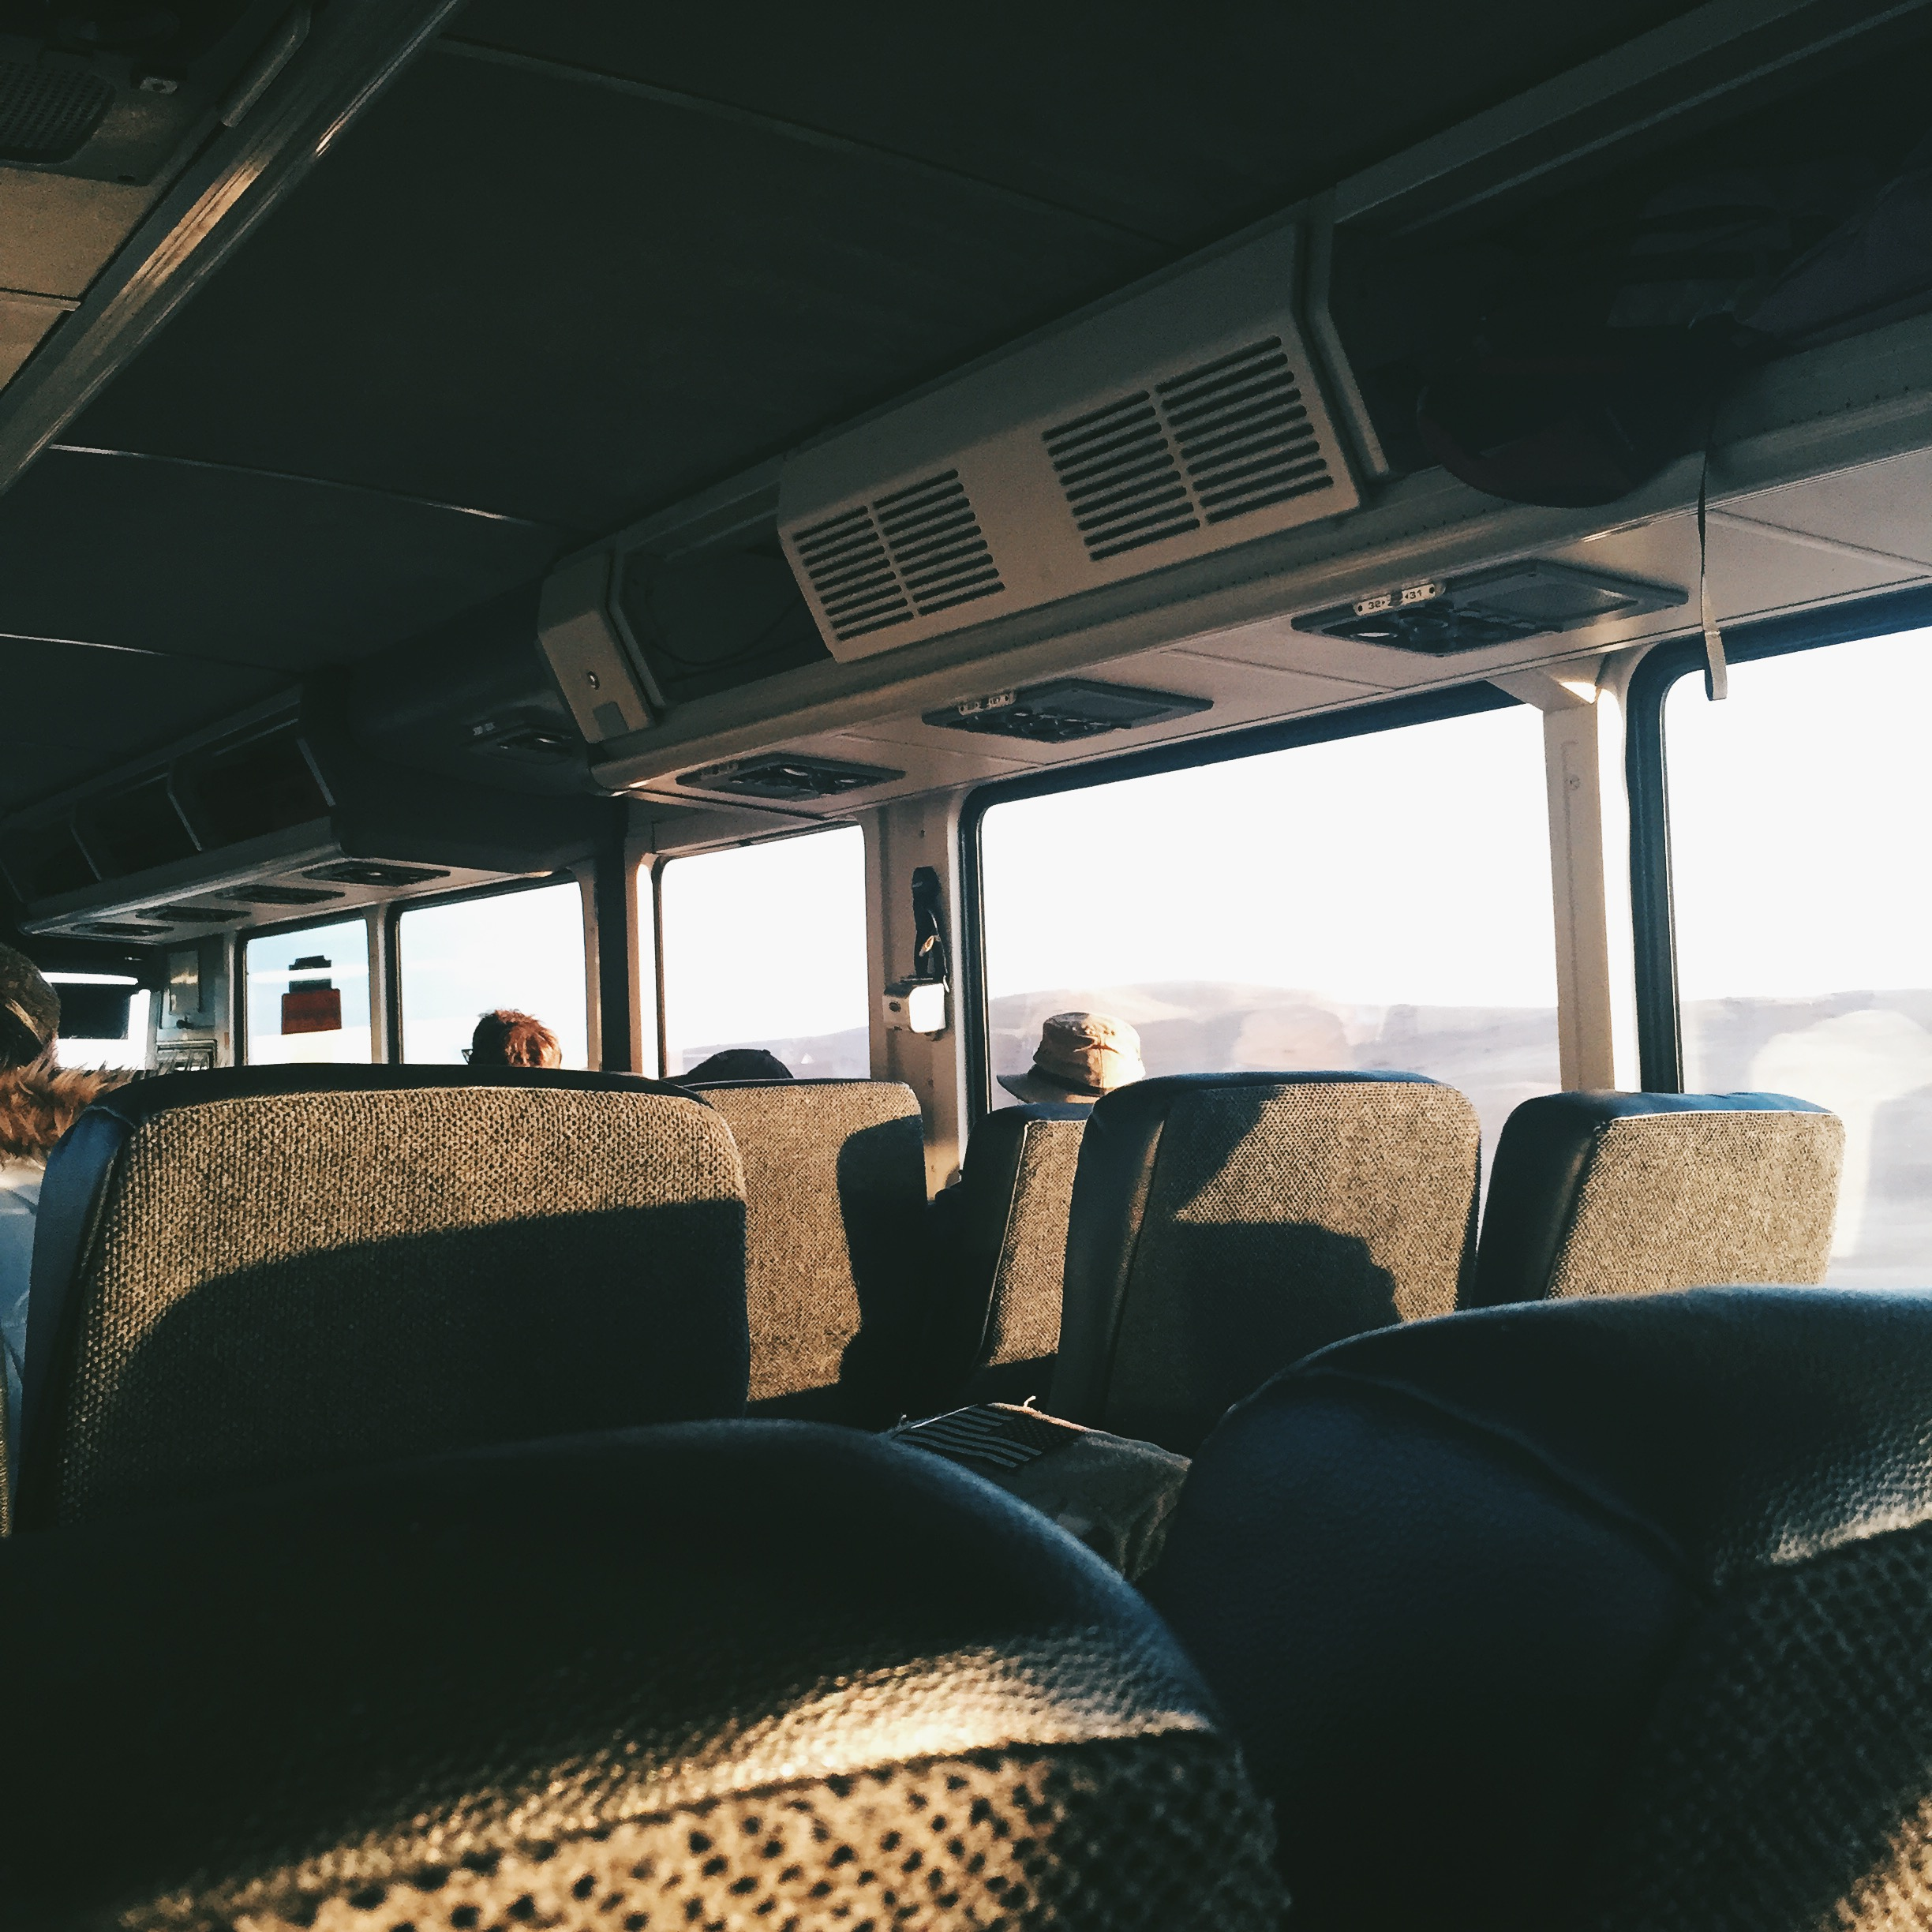 The Dollar Bus Club, Your Direct Access to All $1 Bus Tickets